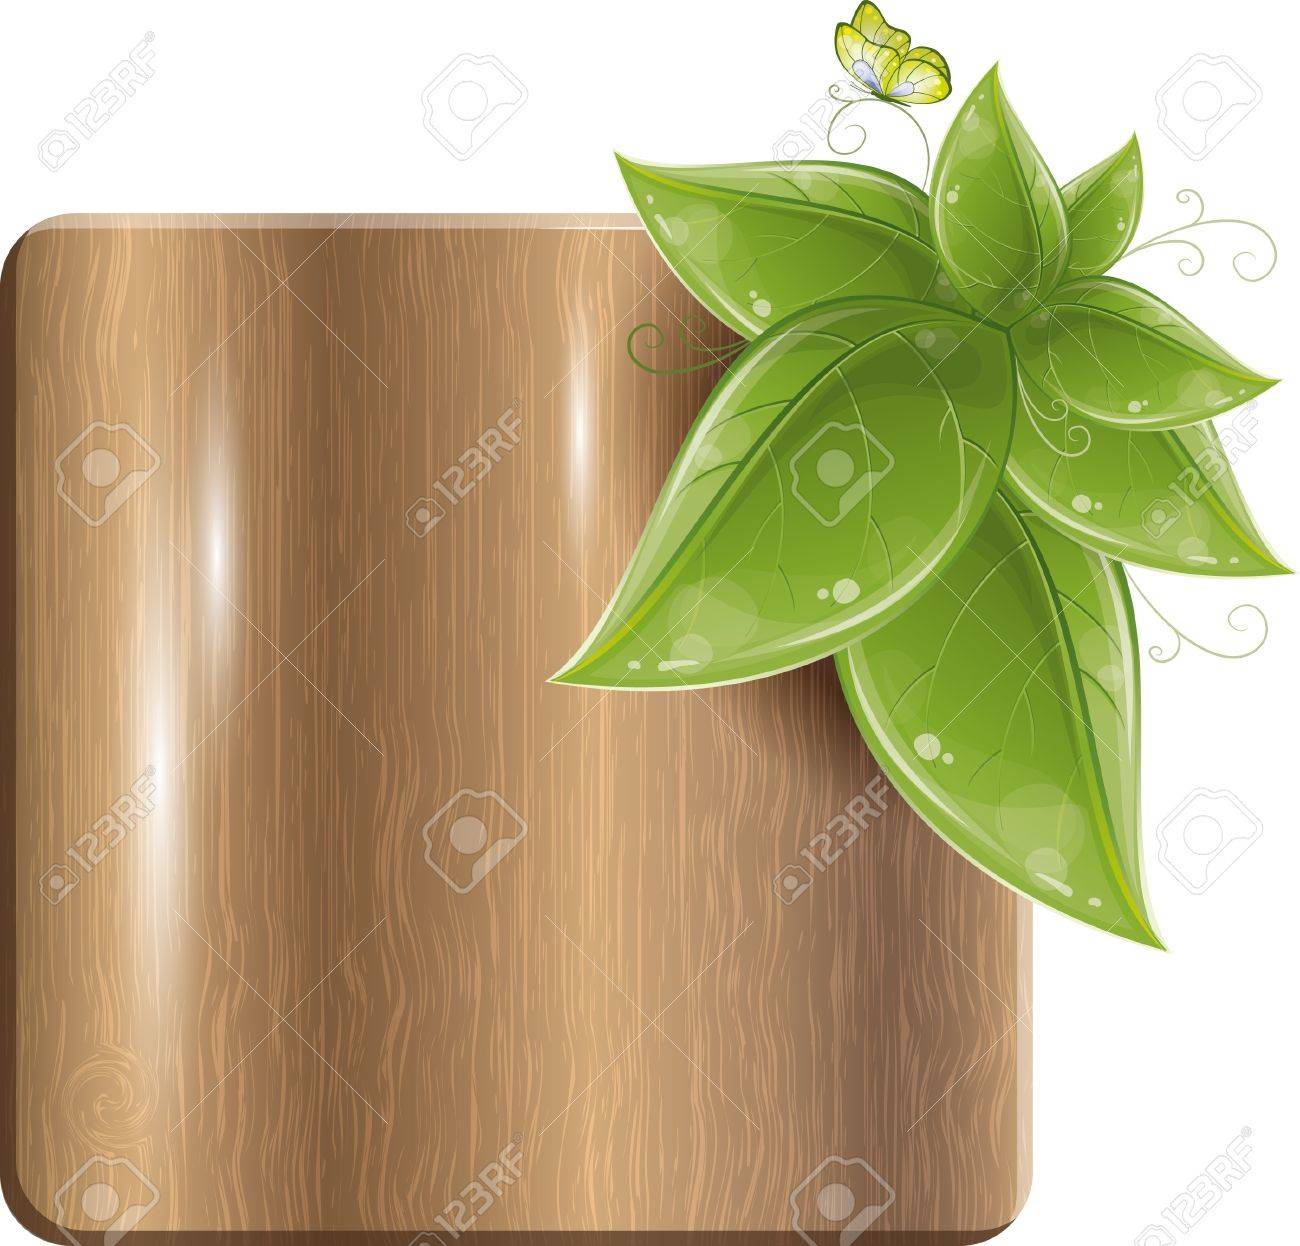 Wood plank with green leaves and butterfly, vector illustration Stock Vector - 9764926